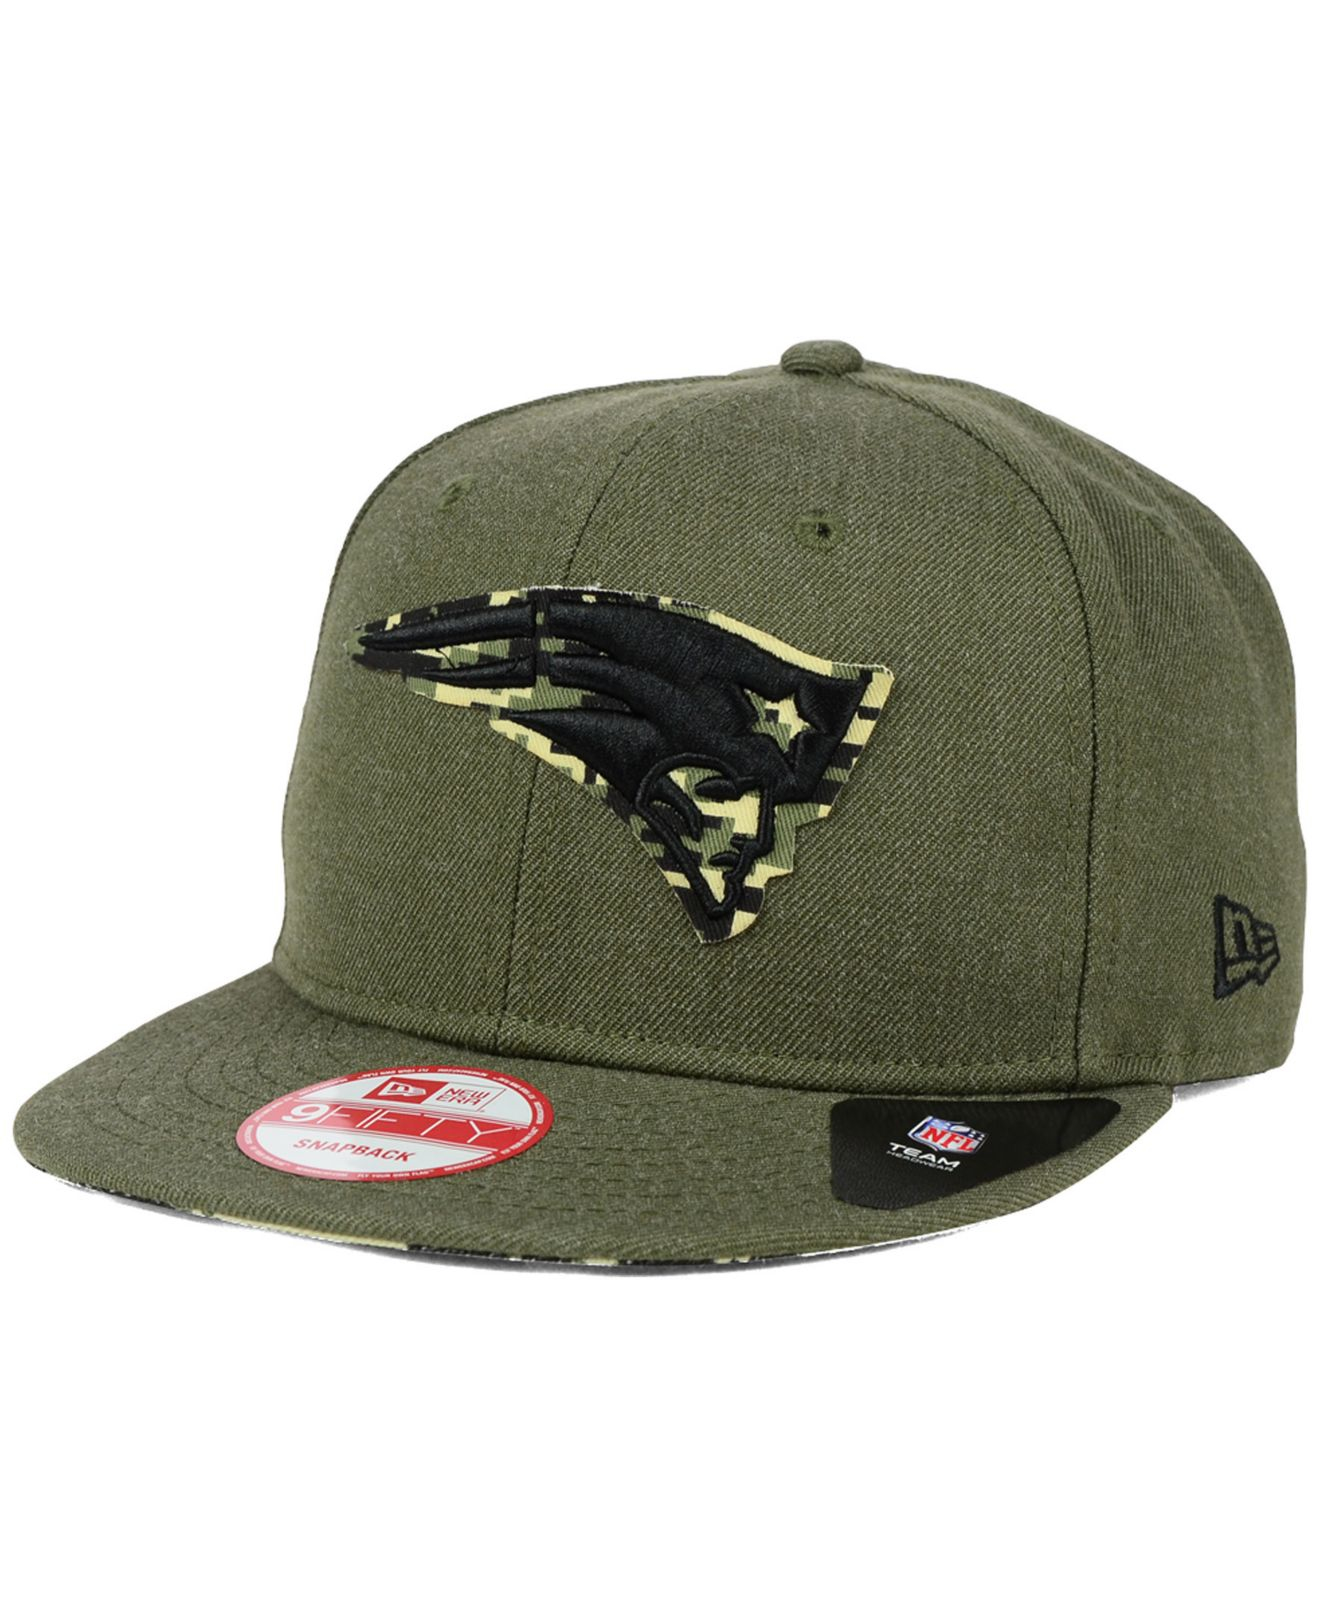 huge selection of c3aaa 6da07 ... order lyst ktz new england patriots camo 9fifty snapback cap in green  fd06a ce9b1